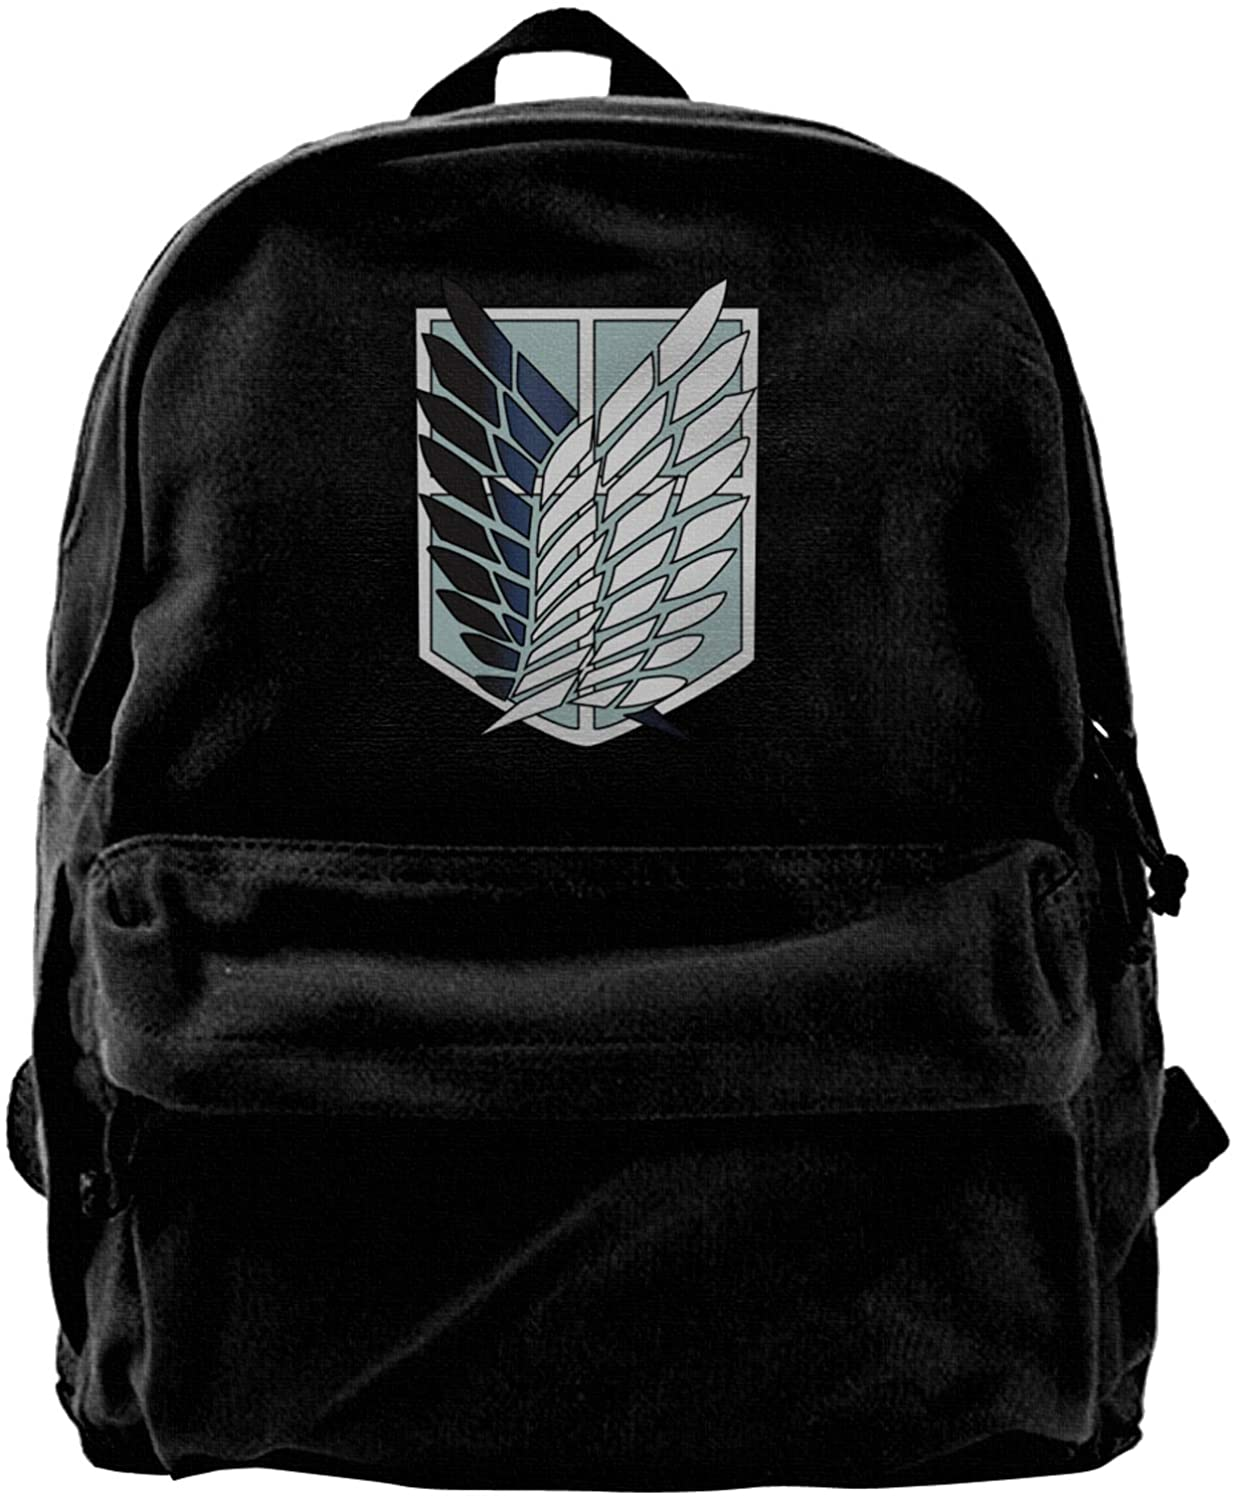 Tymeihao Attack On Titan Backpack Casual Daypack